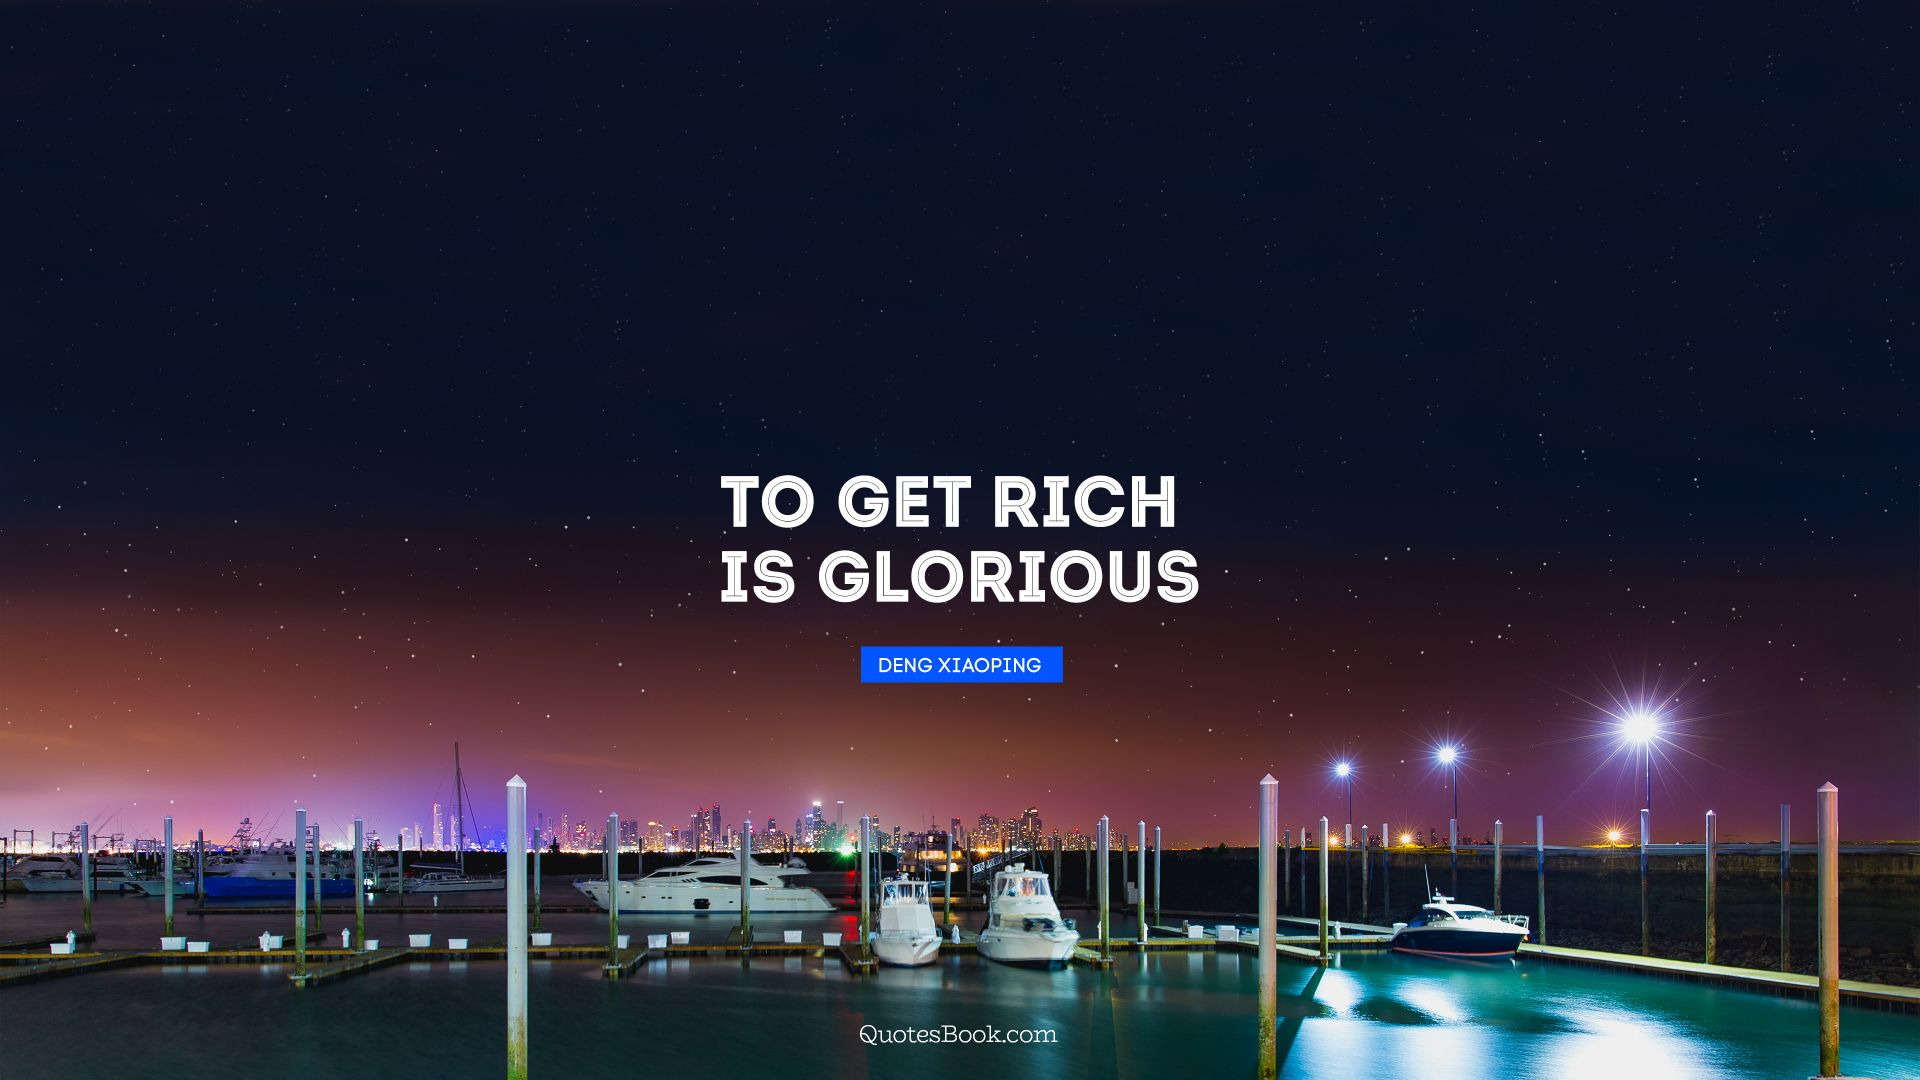 To get rich is glorious. - Quote by Deng Xiaoping